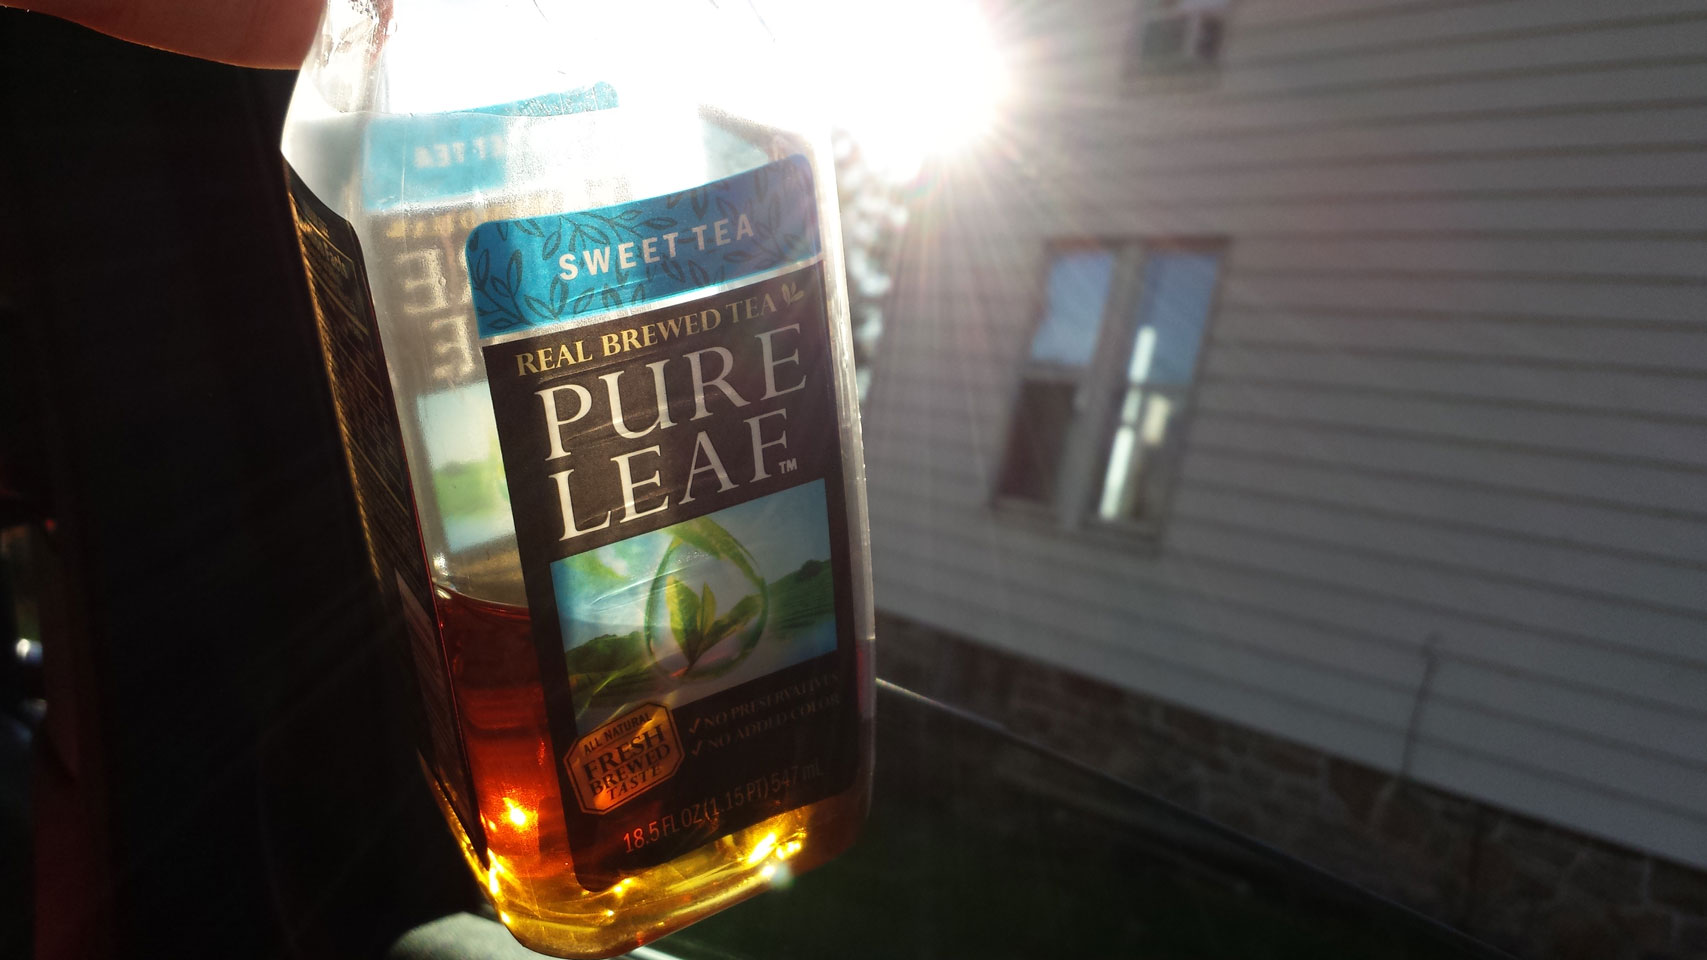 It's full of a brown liquid, is it iced tea? Is it some other product of the south? Hmm...